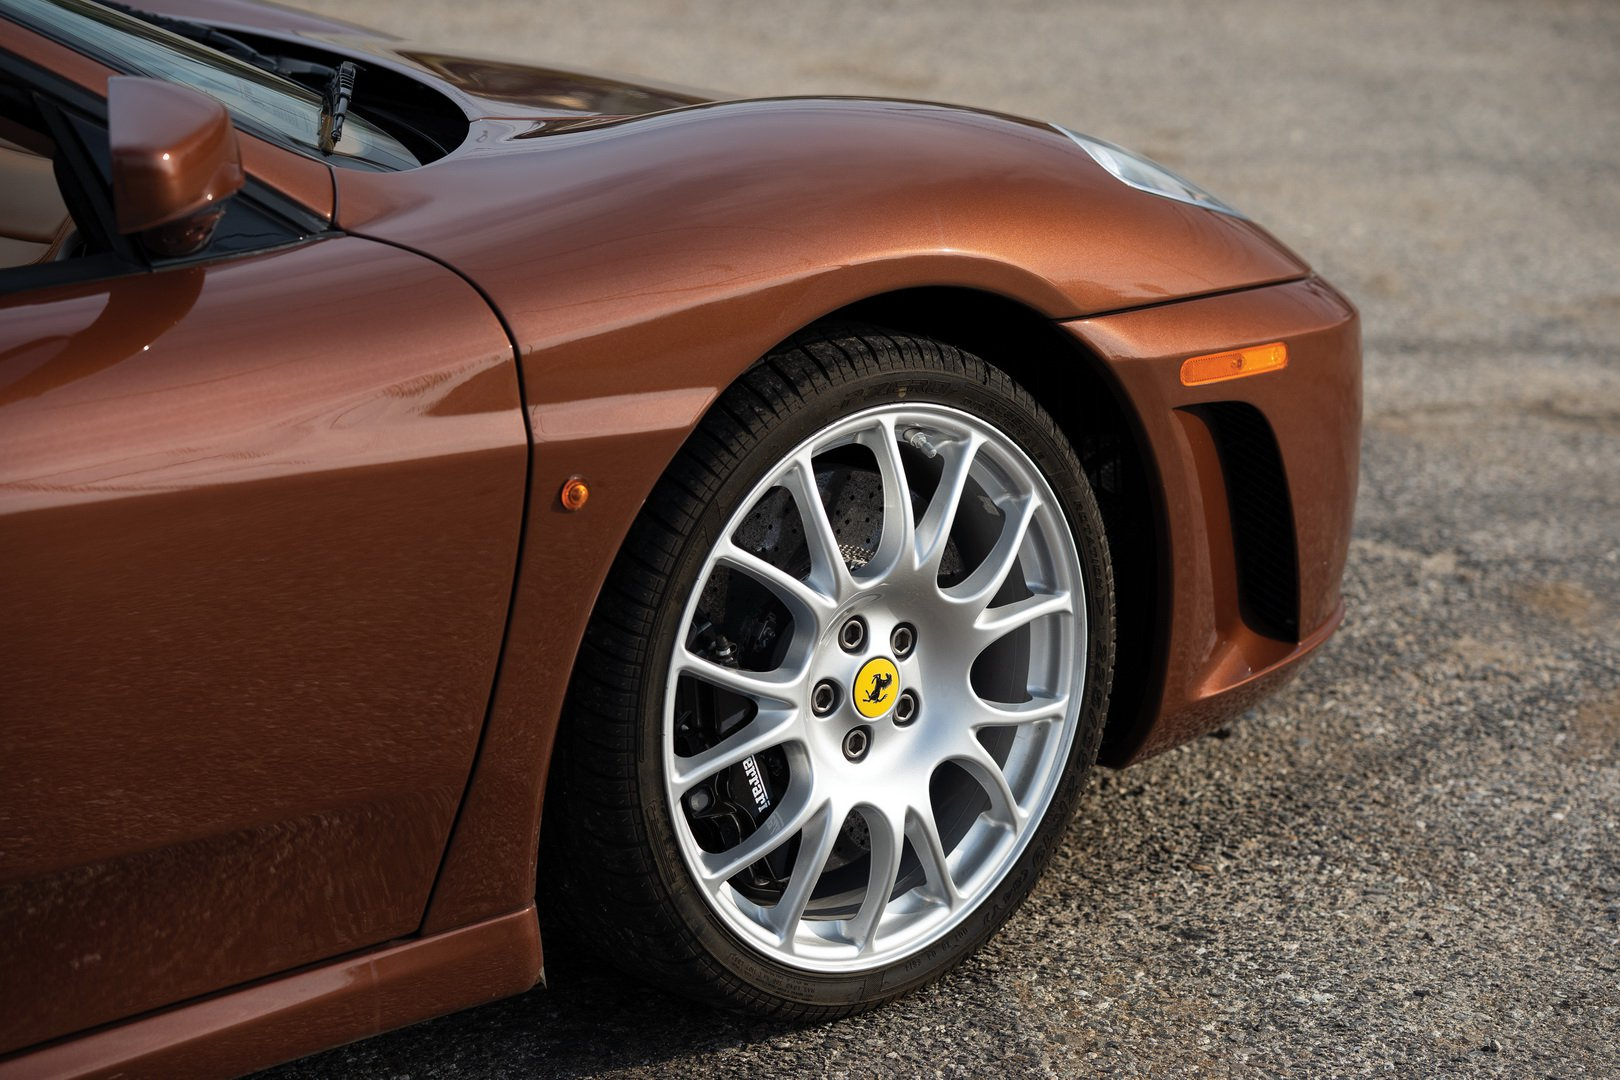 Ferrari F430 Spider in brown Classic Marrone color (12)